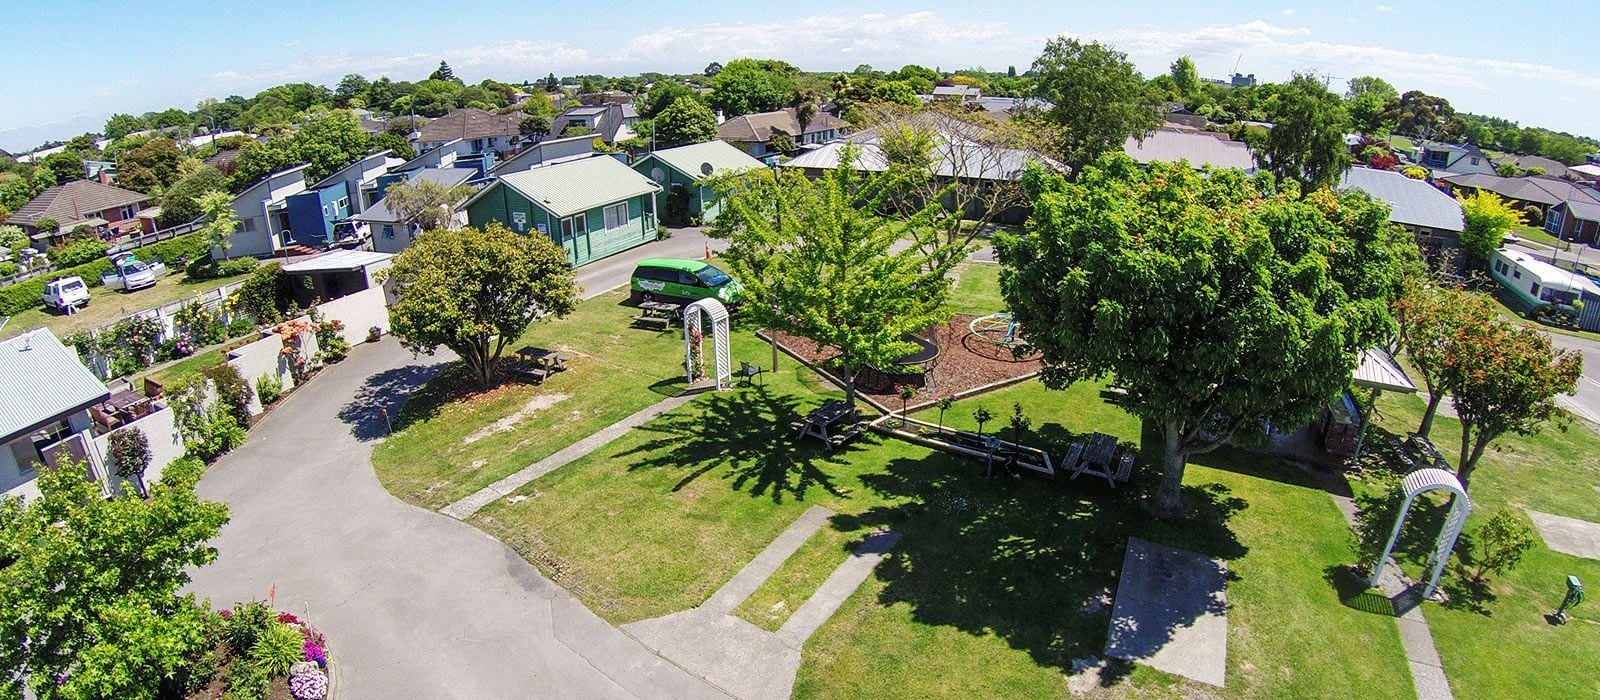 Landscaped Gardens, Holiday Park Accommodation Christchurch